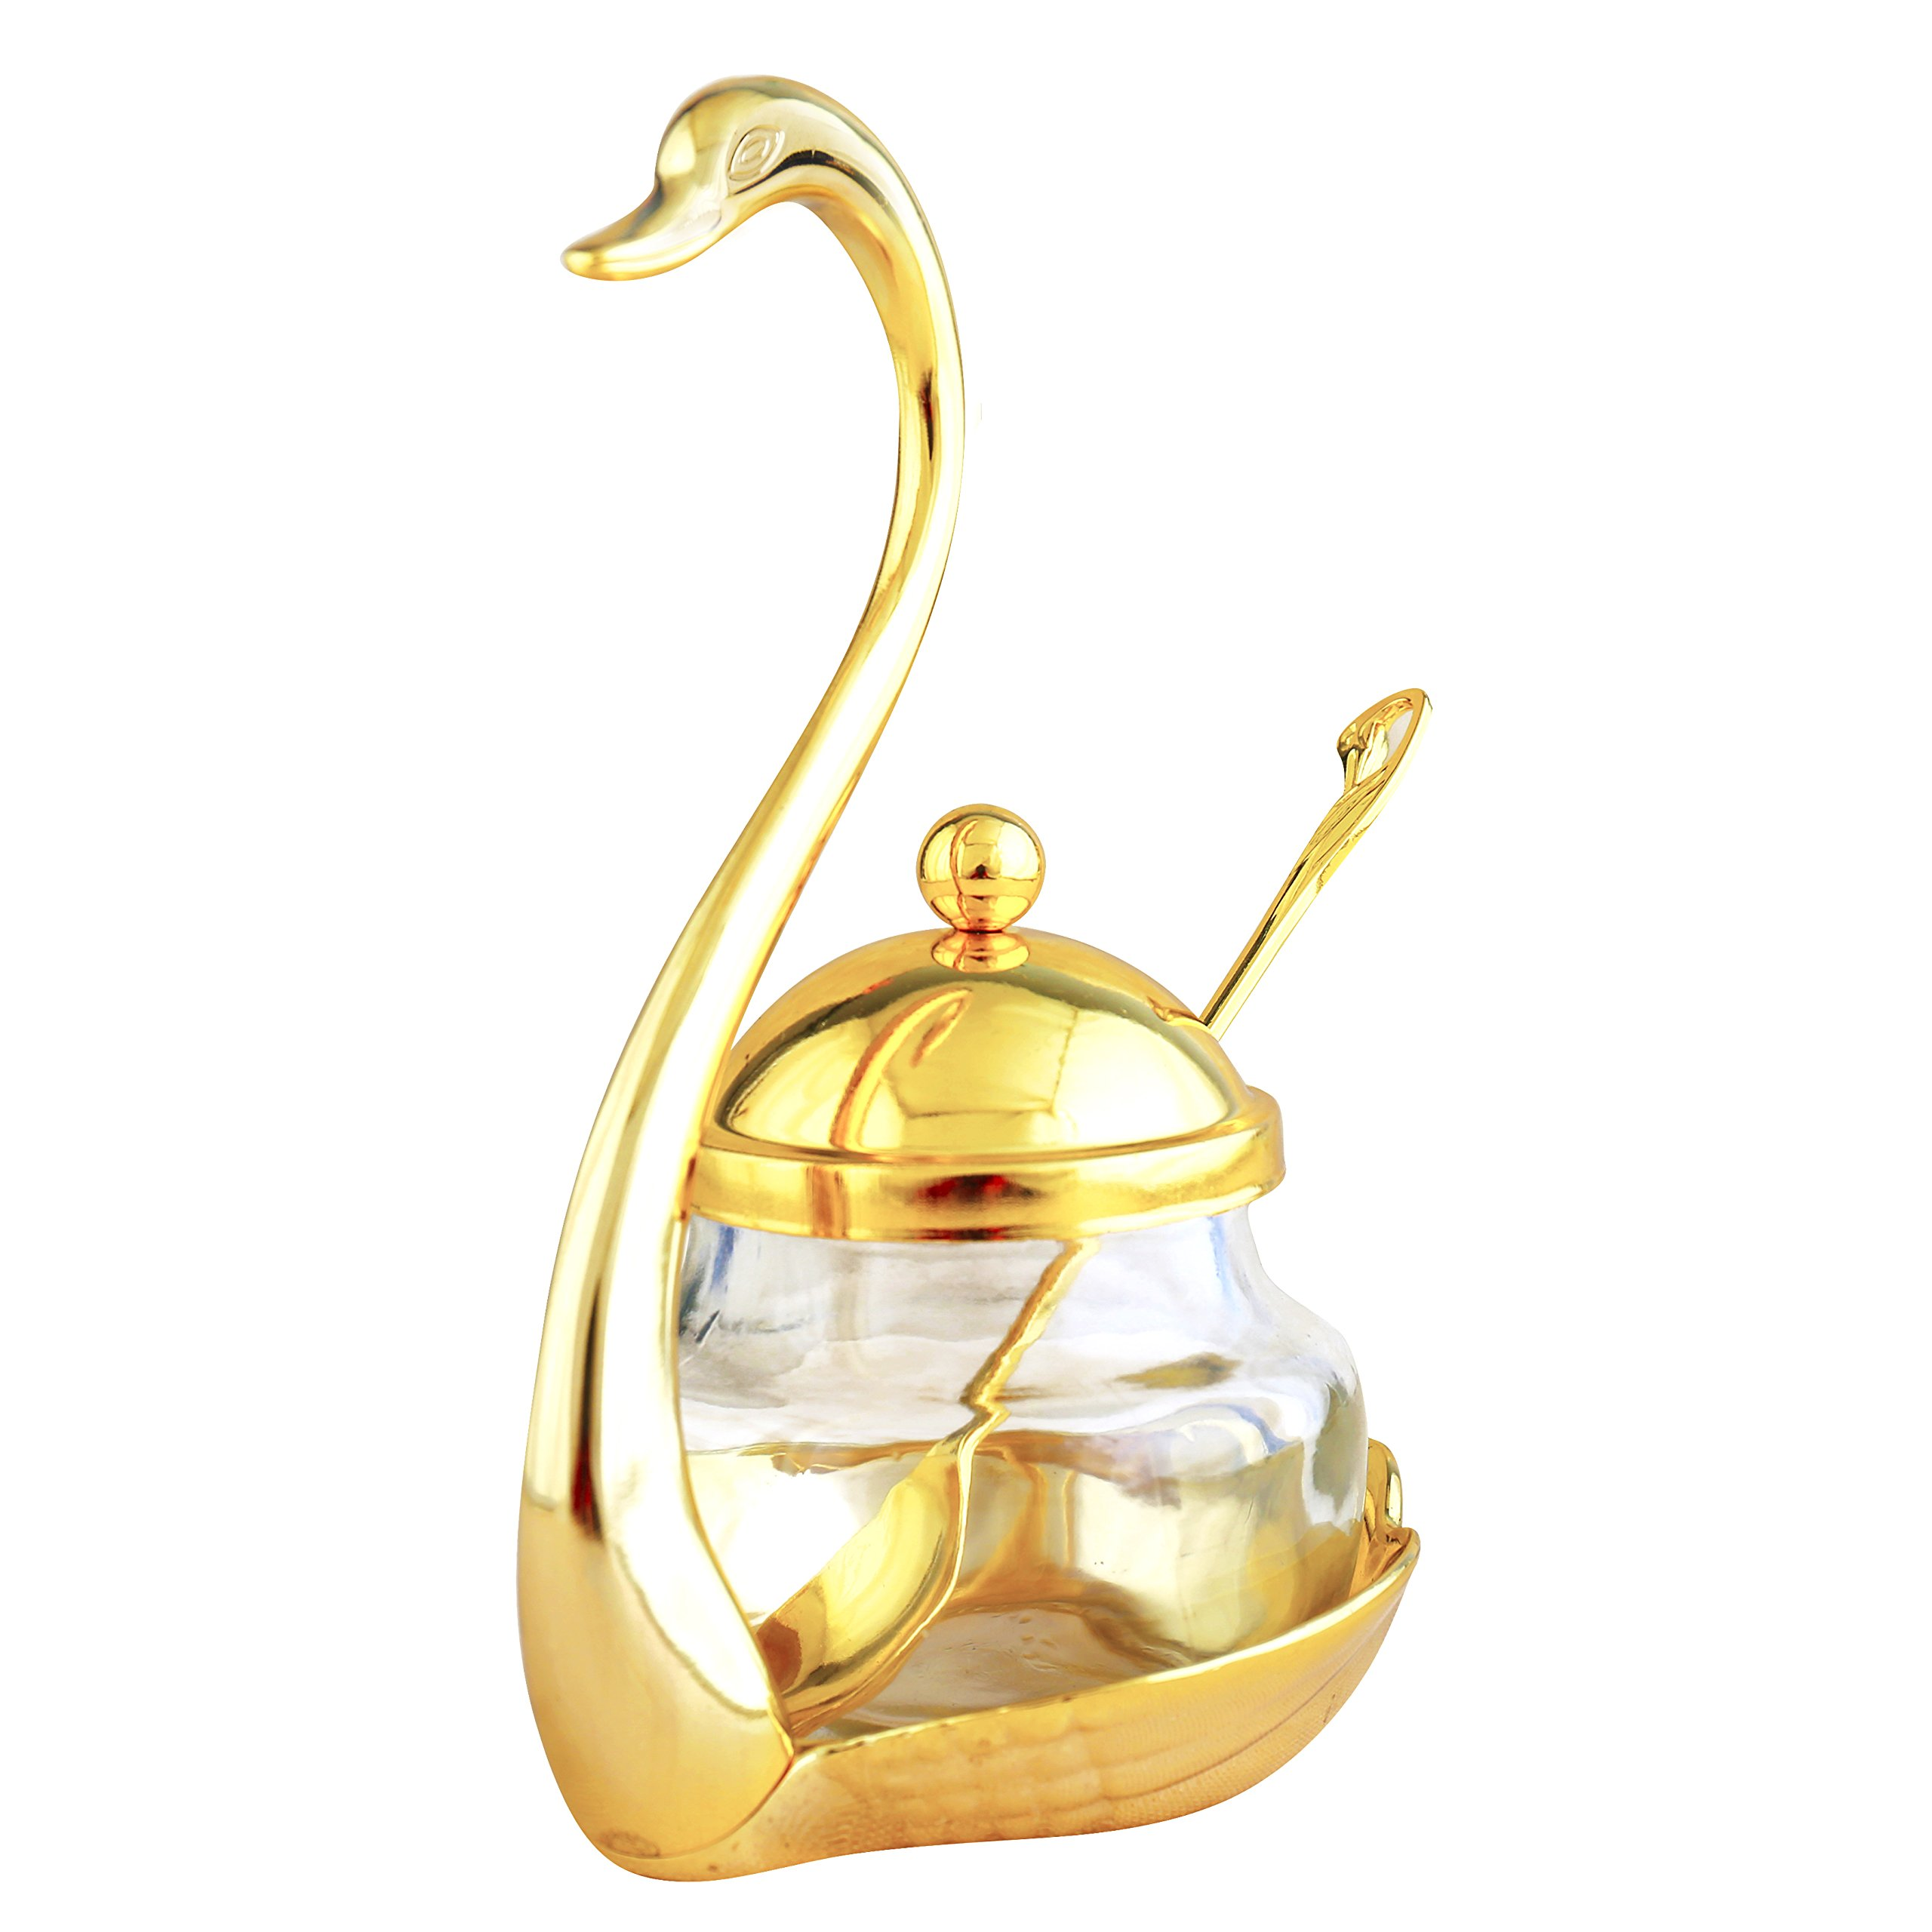 Condiment Pots with Lids and Spoons,FANGZHIDI Gold Swan Seasoning Container Canister Storage Organizer Jar Sugar Bowl Cup with Stainless Steel Holders for Coffee Berry Jam Syrup Cream Spice Salt